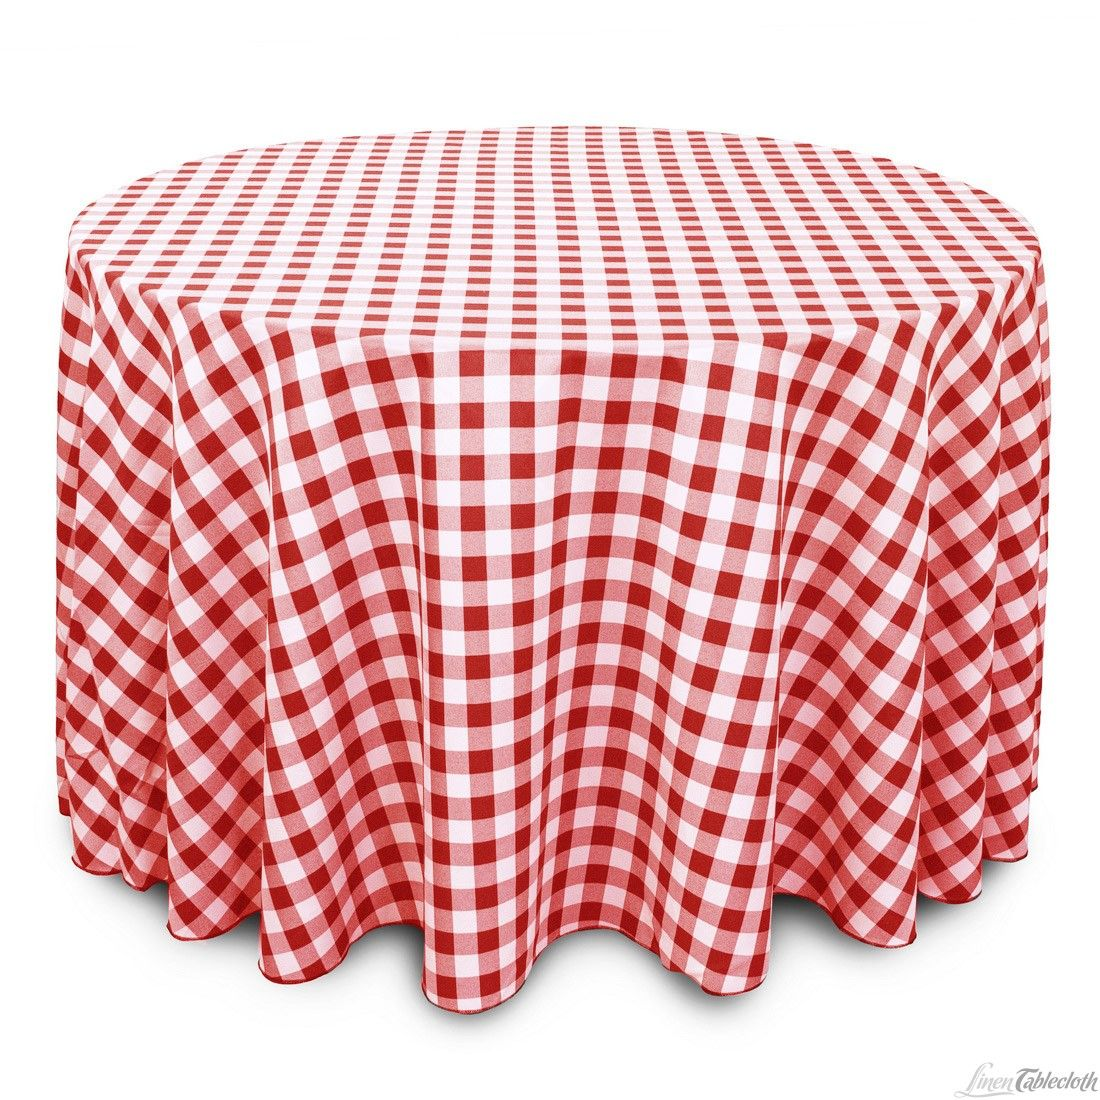 Buy 108 Inch Round Red White Checkered Tablecloth For Weddings